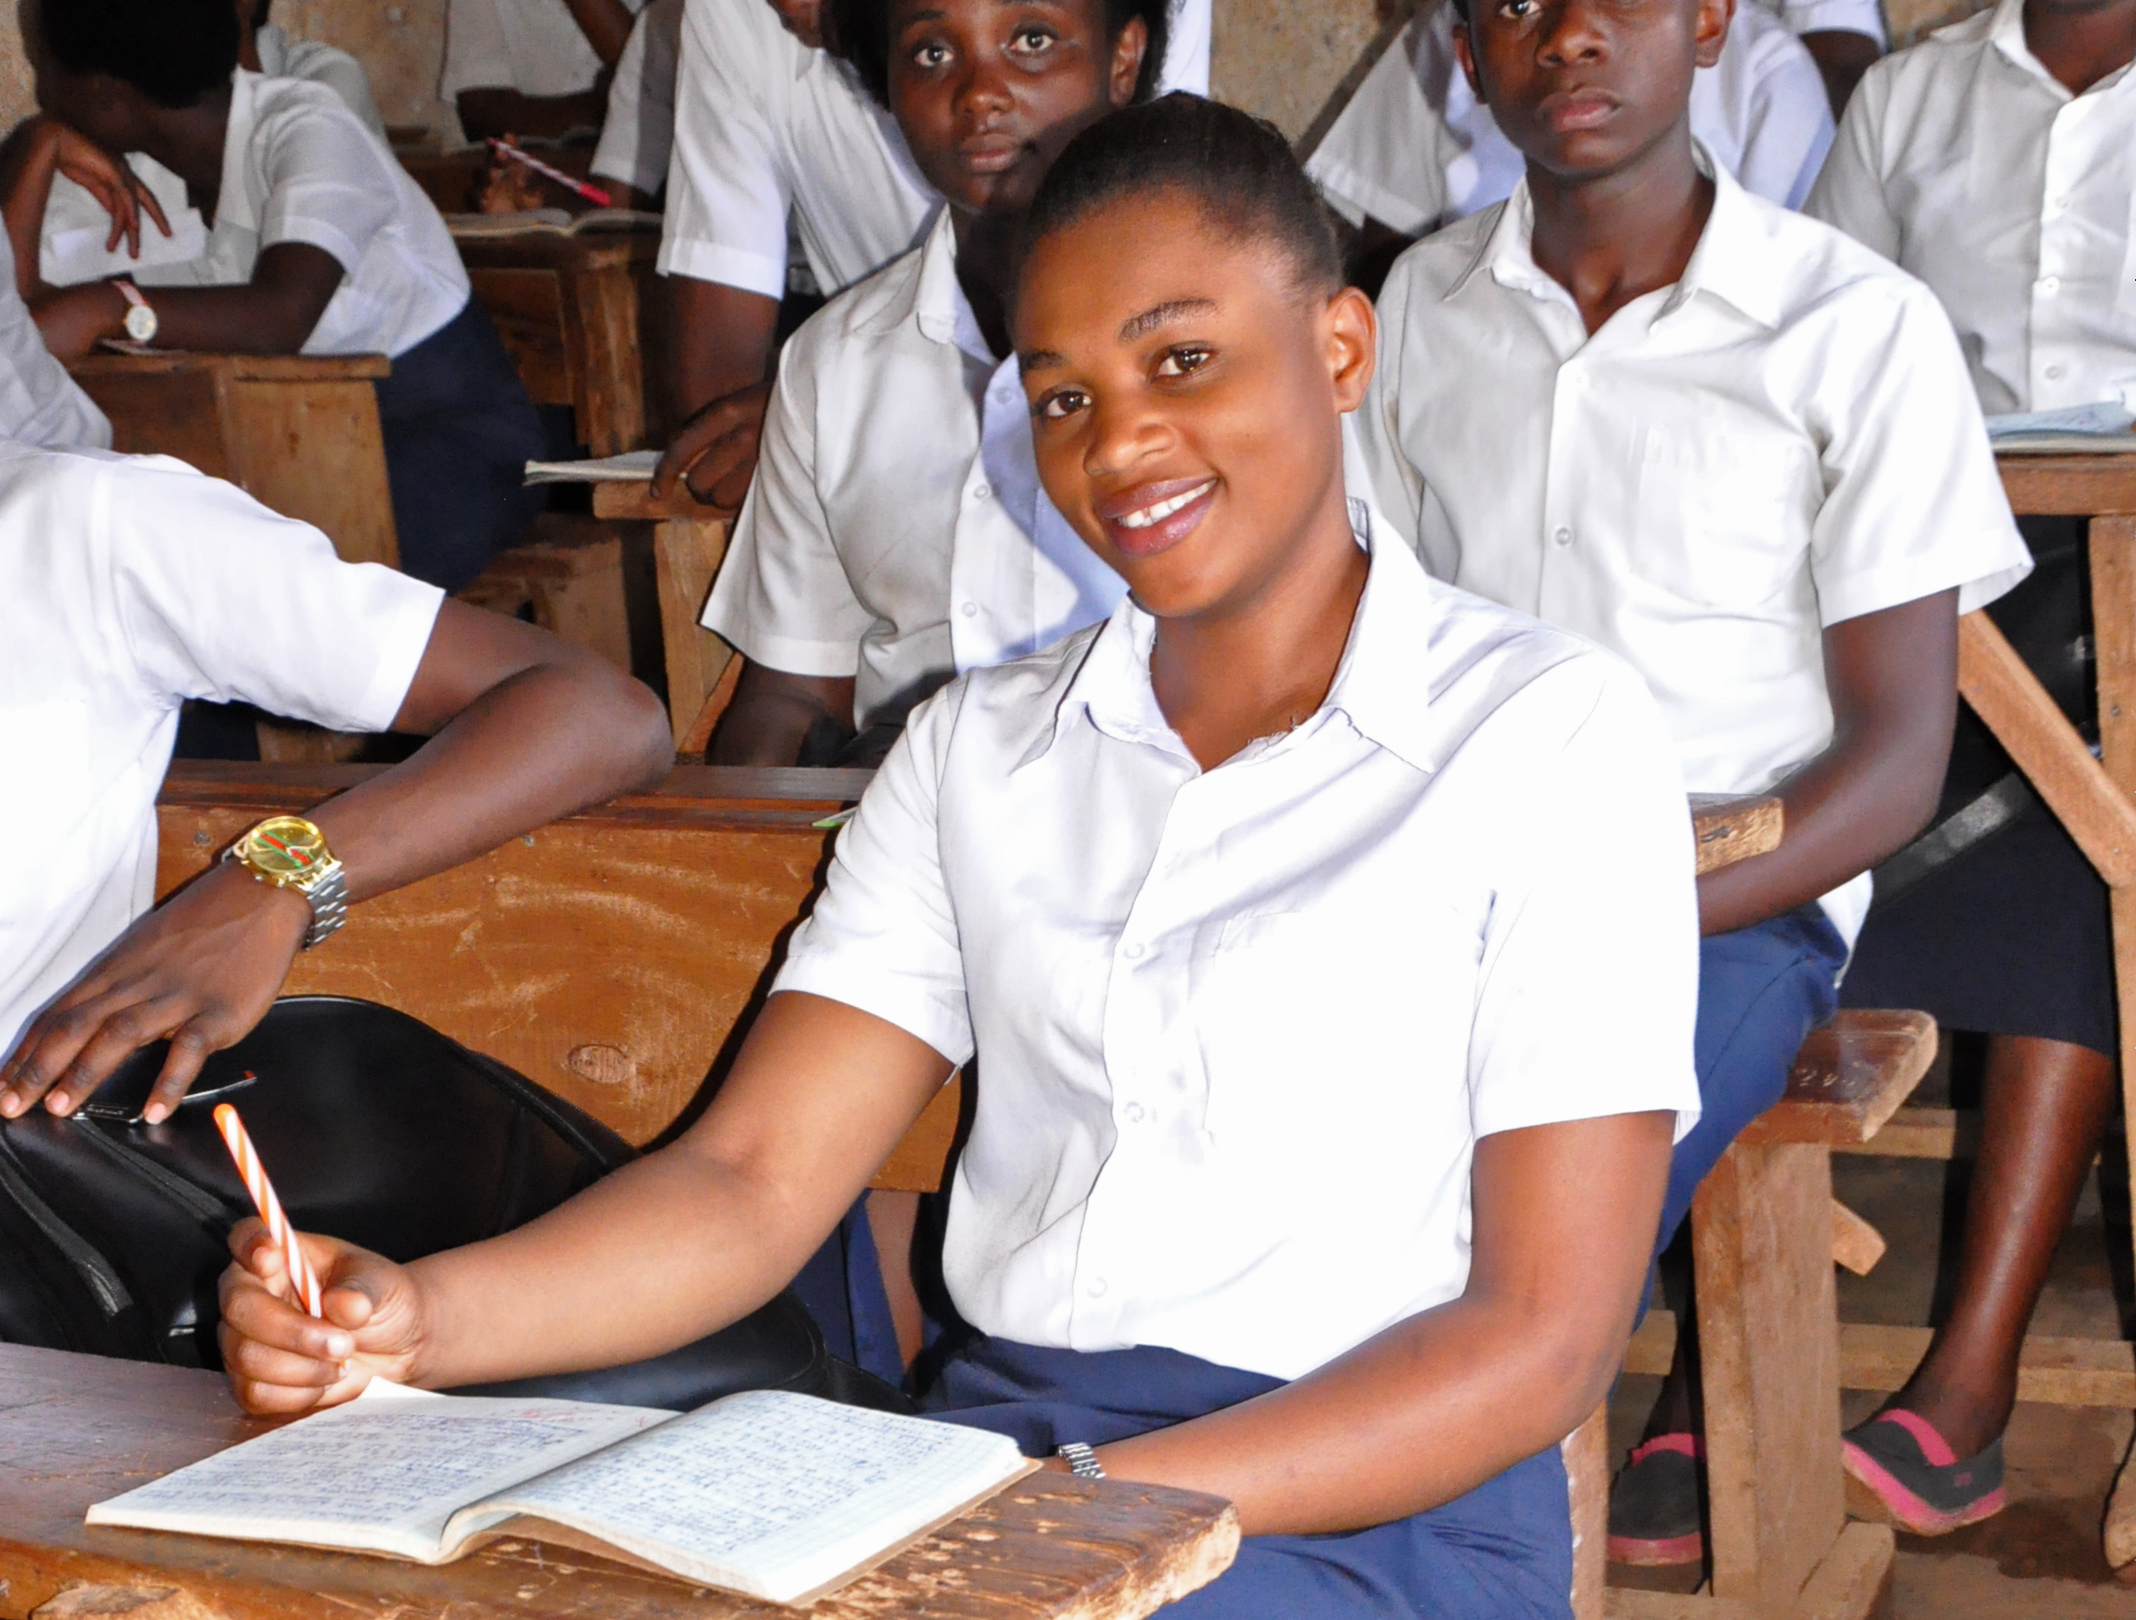 Future Hope Africa provides scholarships for students in Bukavu, Democratic Republic of the Congo